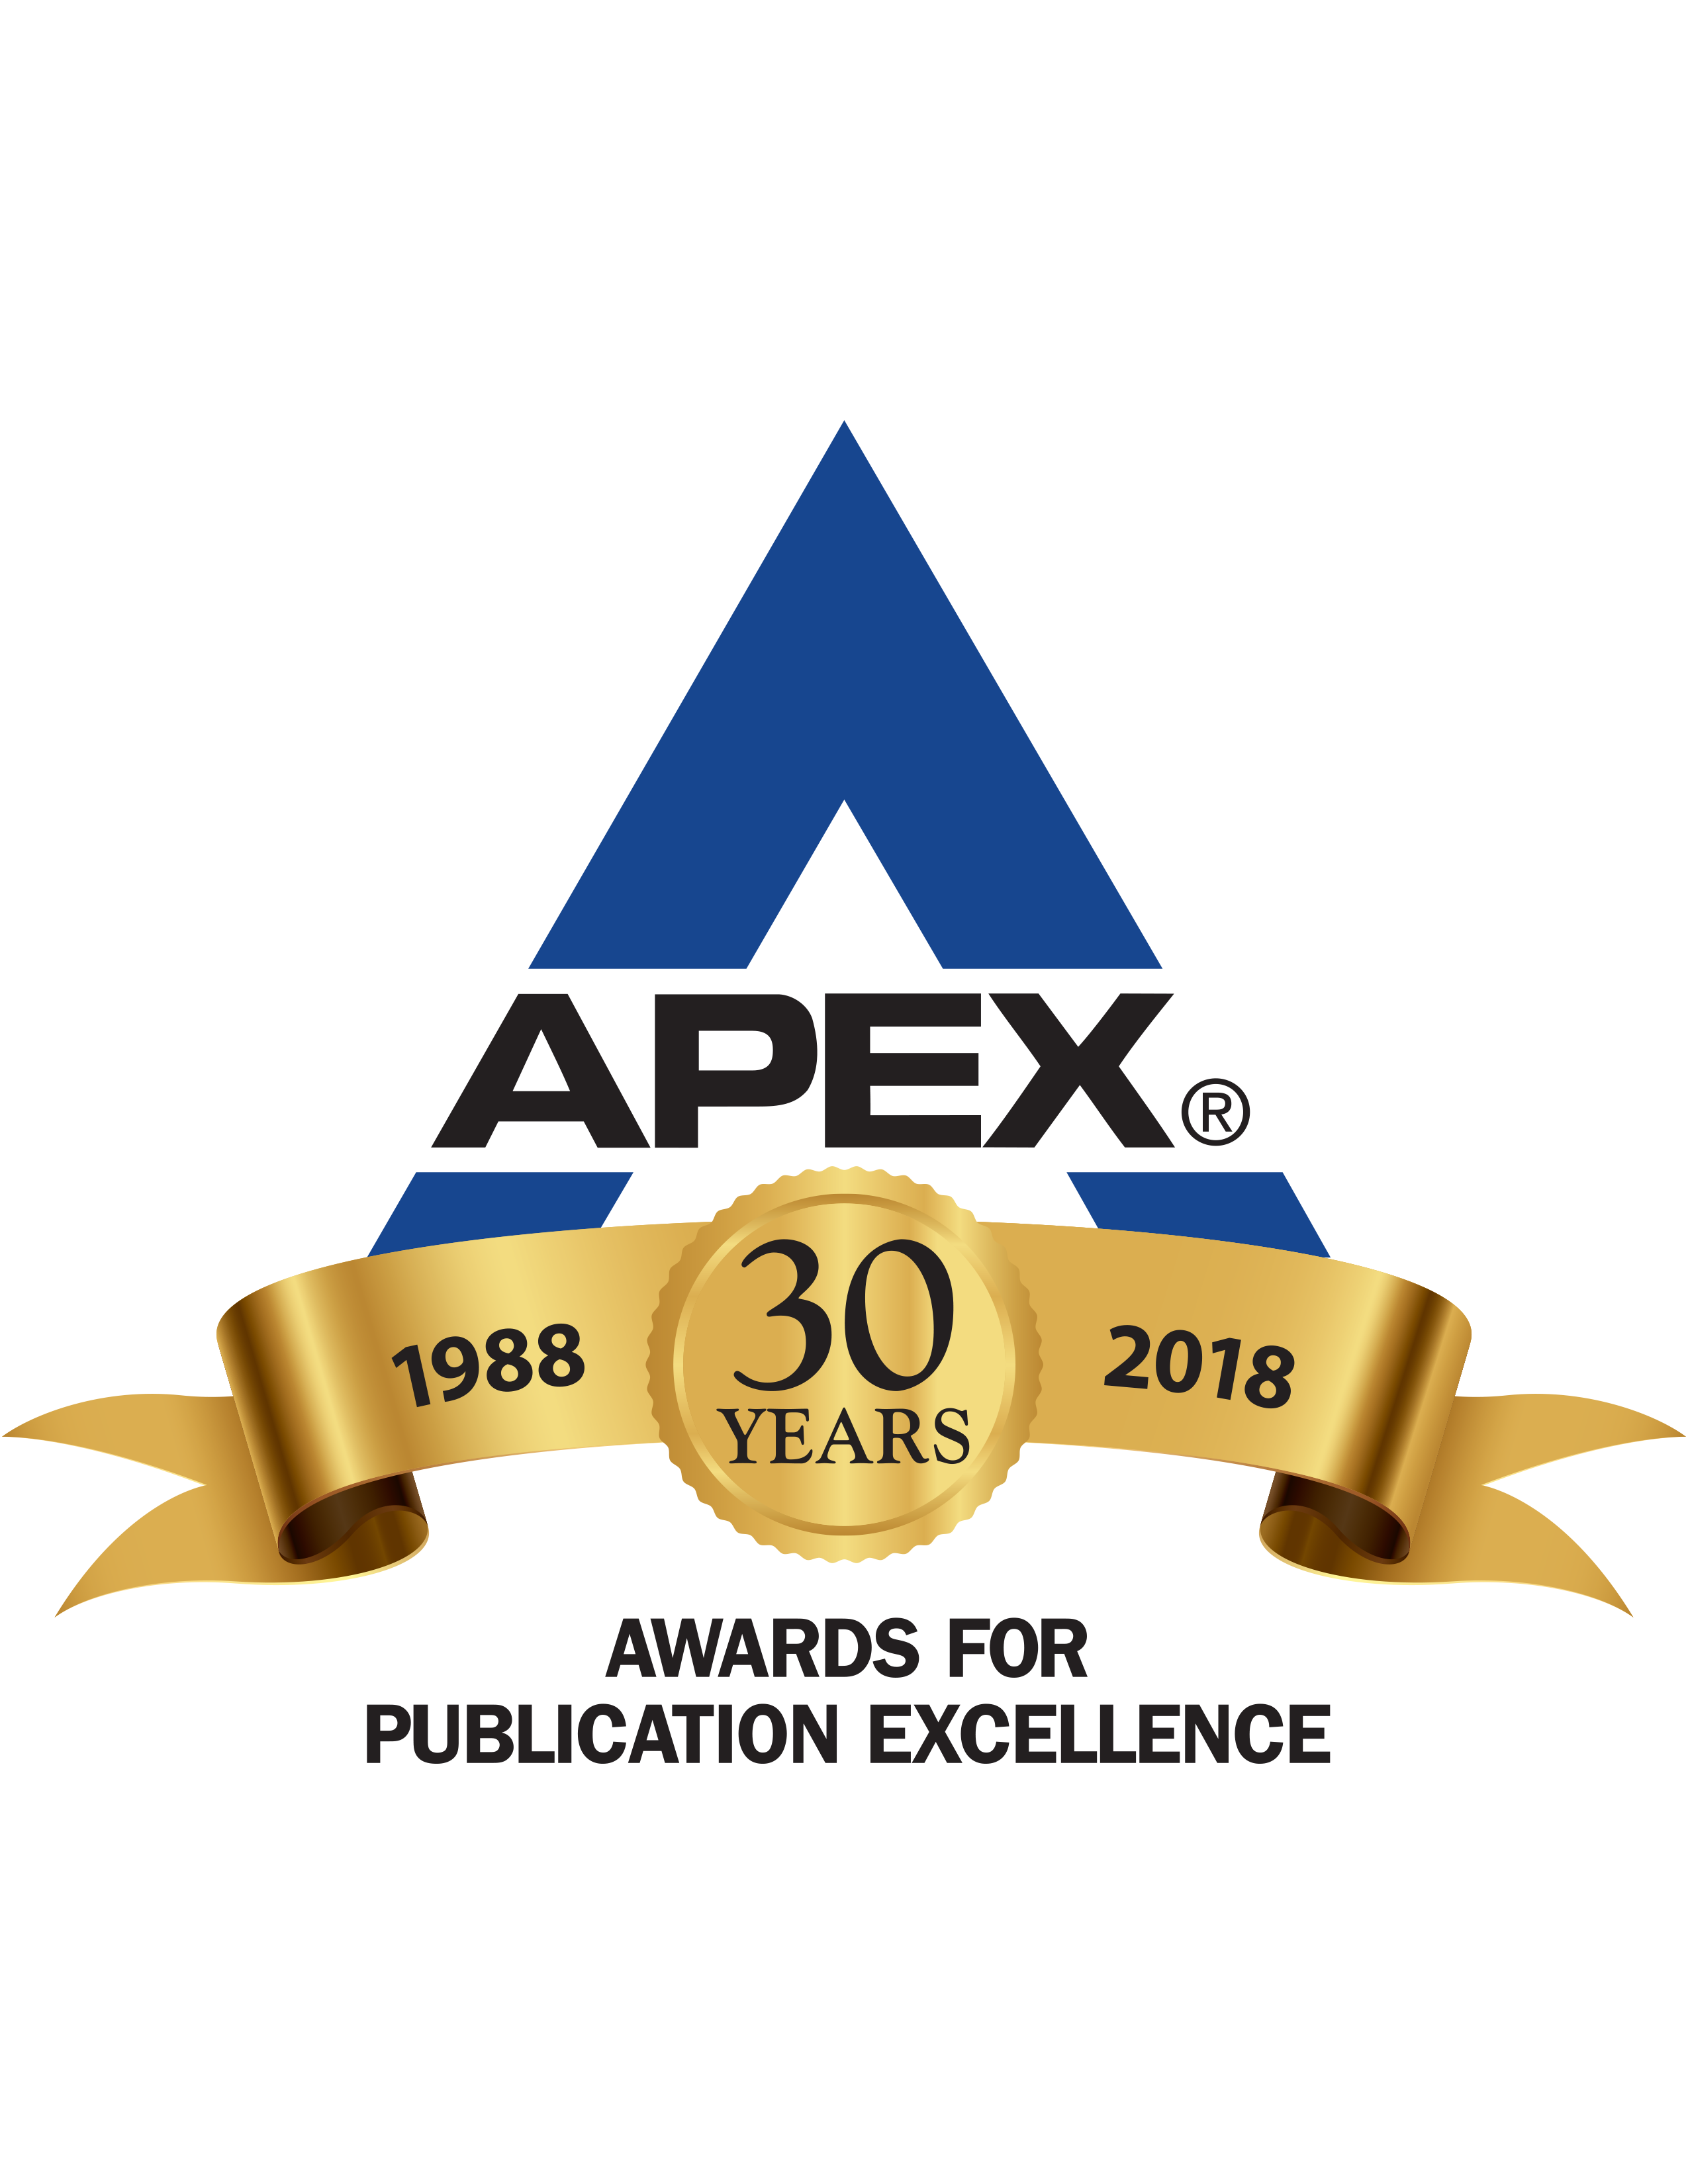 Award transparent excellence. Apex awards the th